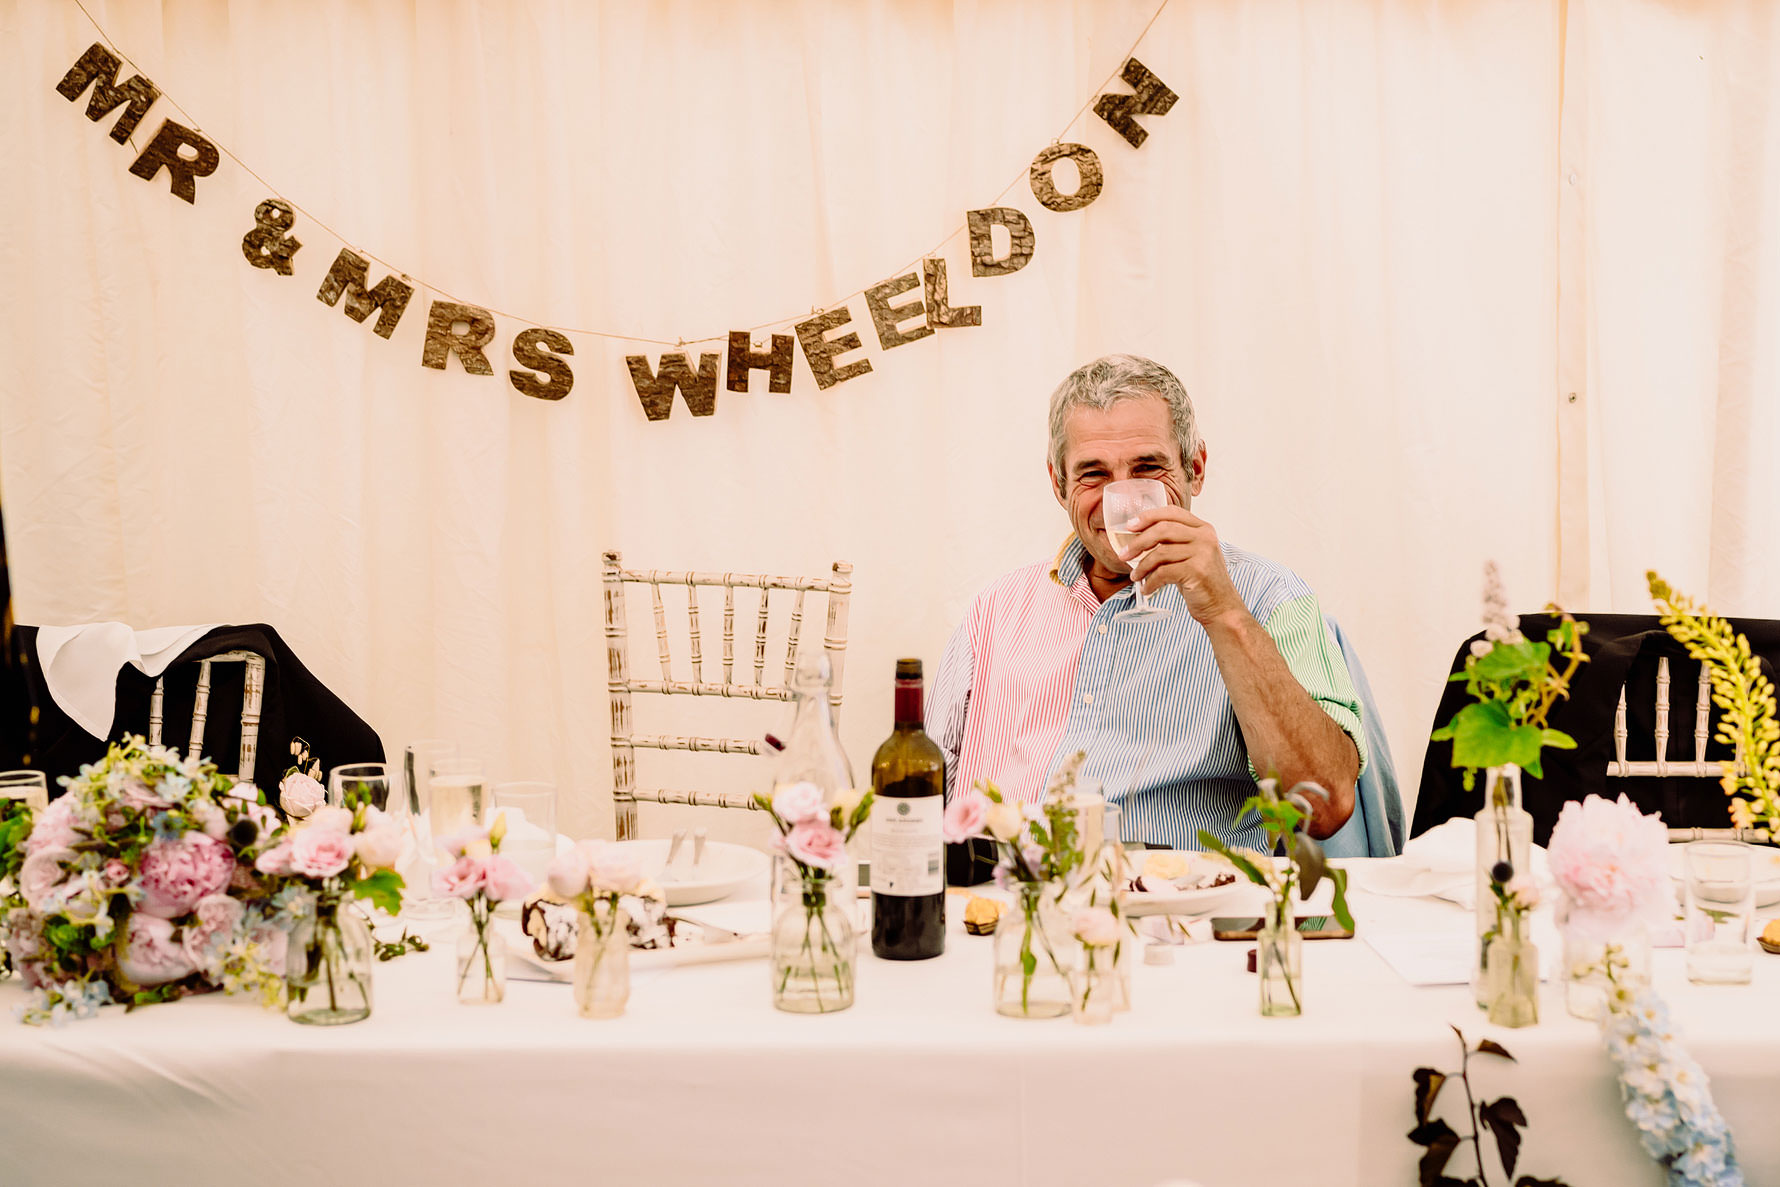 the father of the groom enjoying a drink